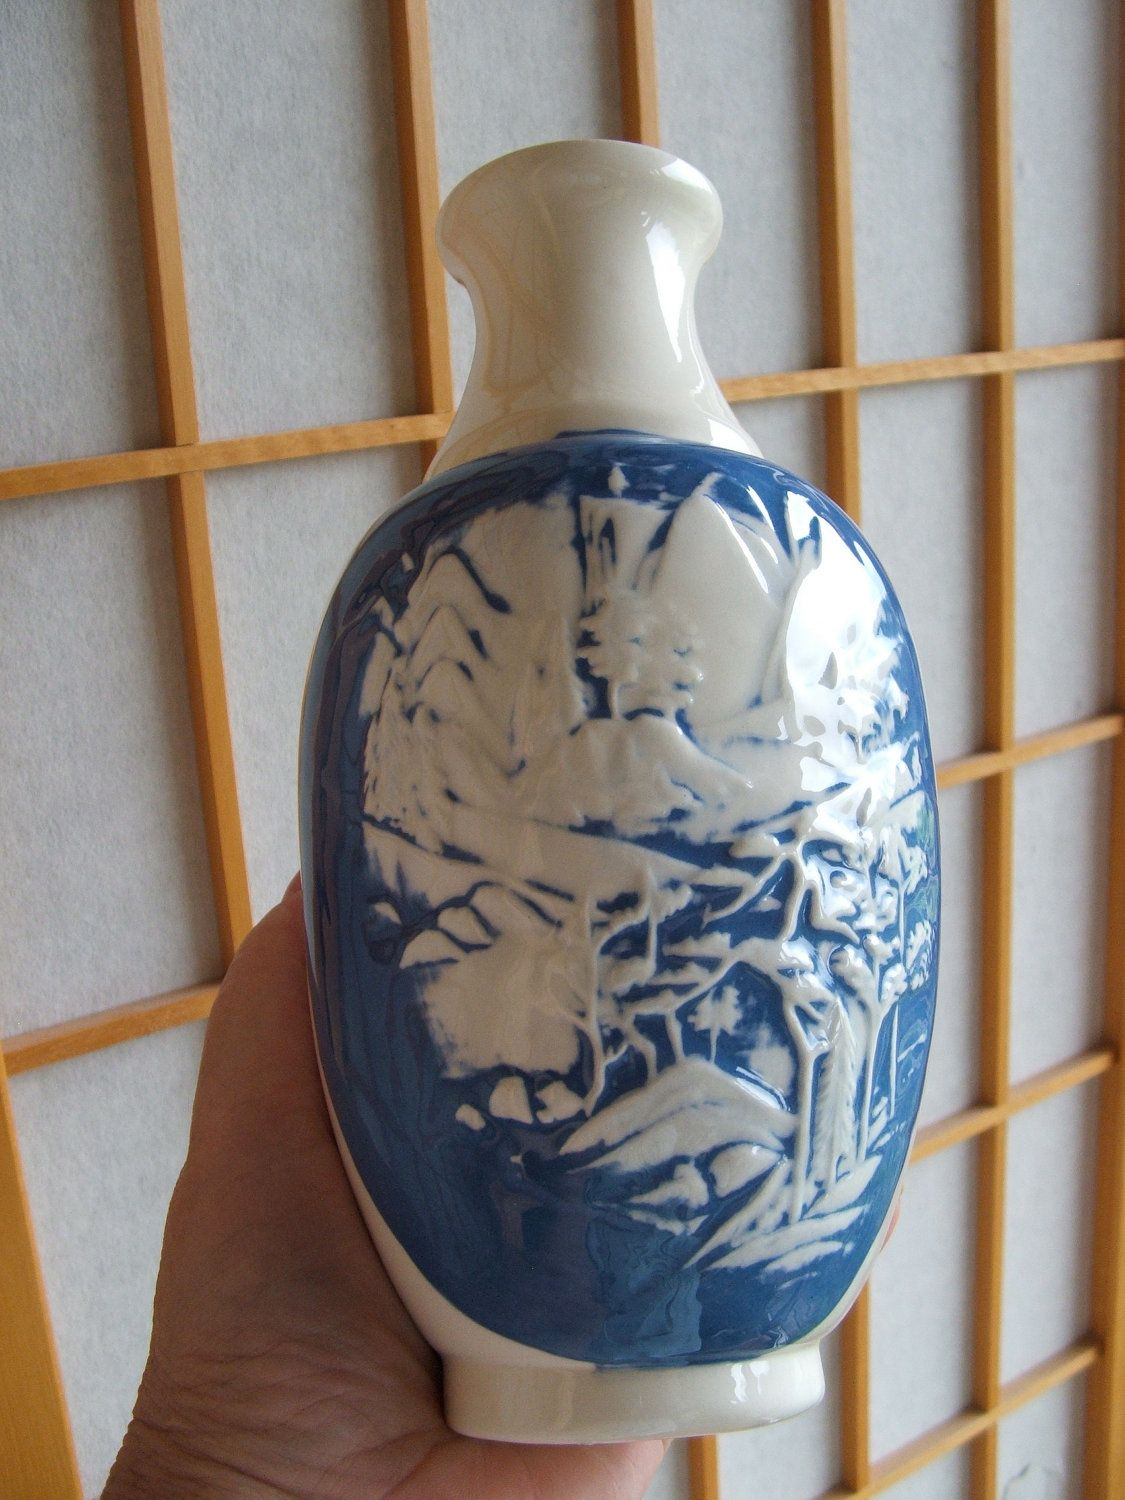 Vintage ceramic vase with blue and white mountain scene by vintage ceramic vase with blue and white mountain scene by lookonmytreasures on etsy floridaeventfo Choice Image